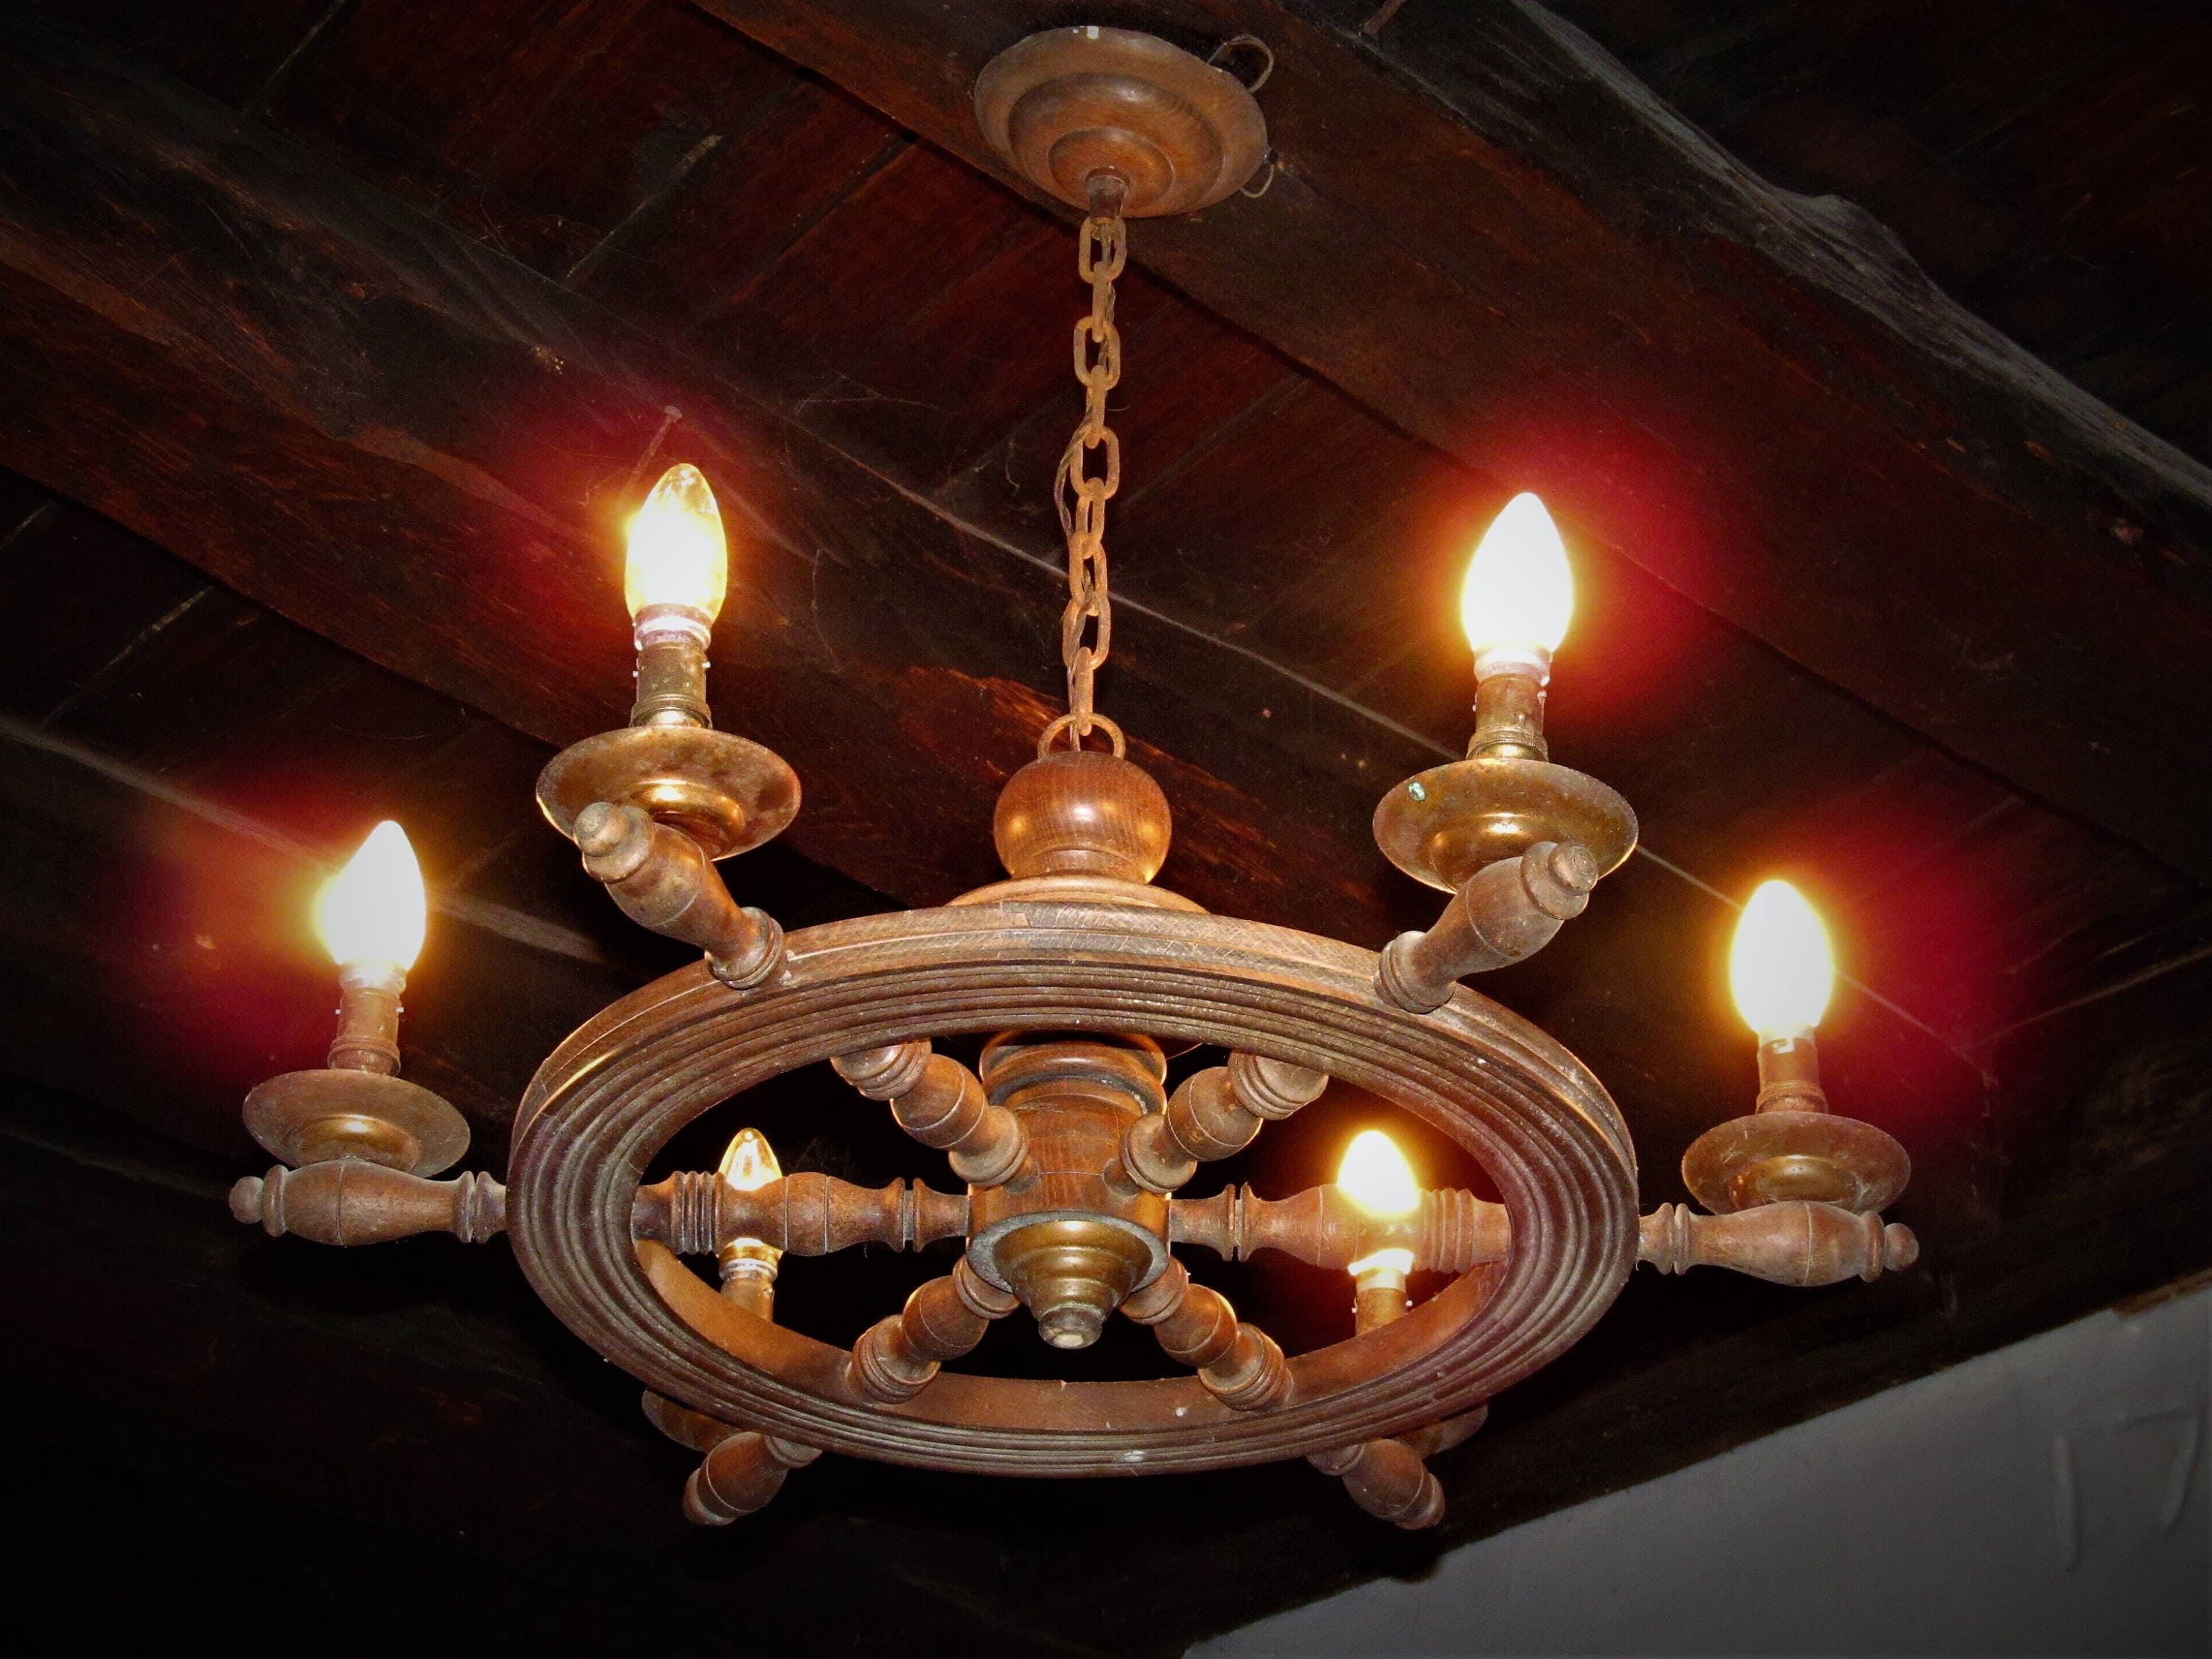 Fabulous antique ships wheel 6 branch wooden french chandelier in fabulous antique ships wheel 6 branch wooden french chandelier in working condition but may need some tlc mozeypictures Images